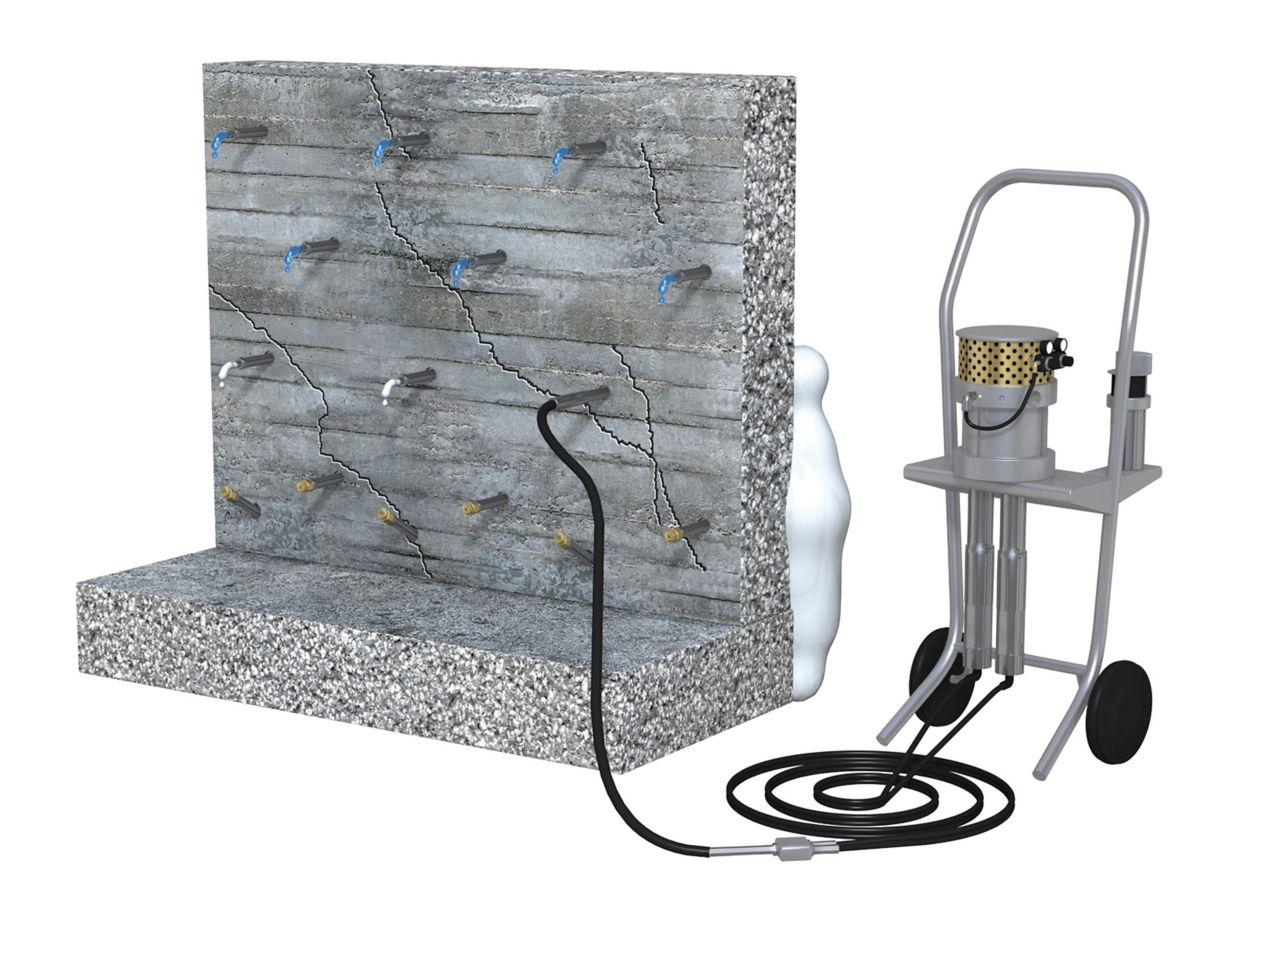 Injection for waterproofing leaking walls and kicker areas 3d rendering